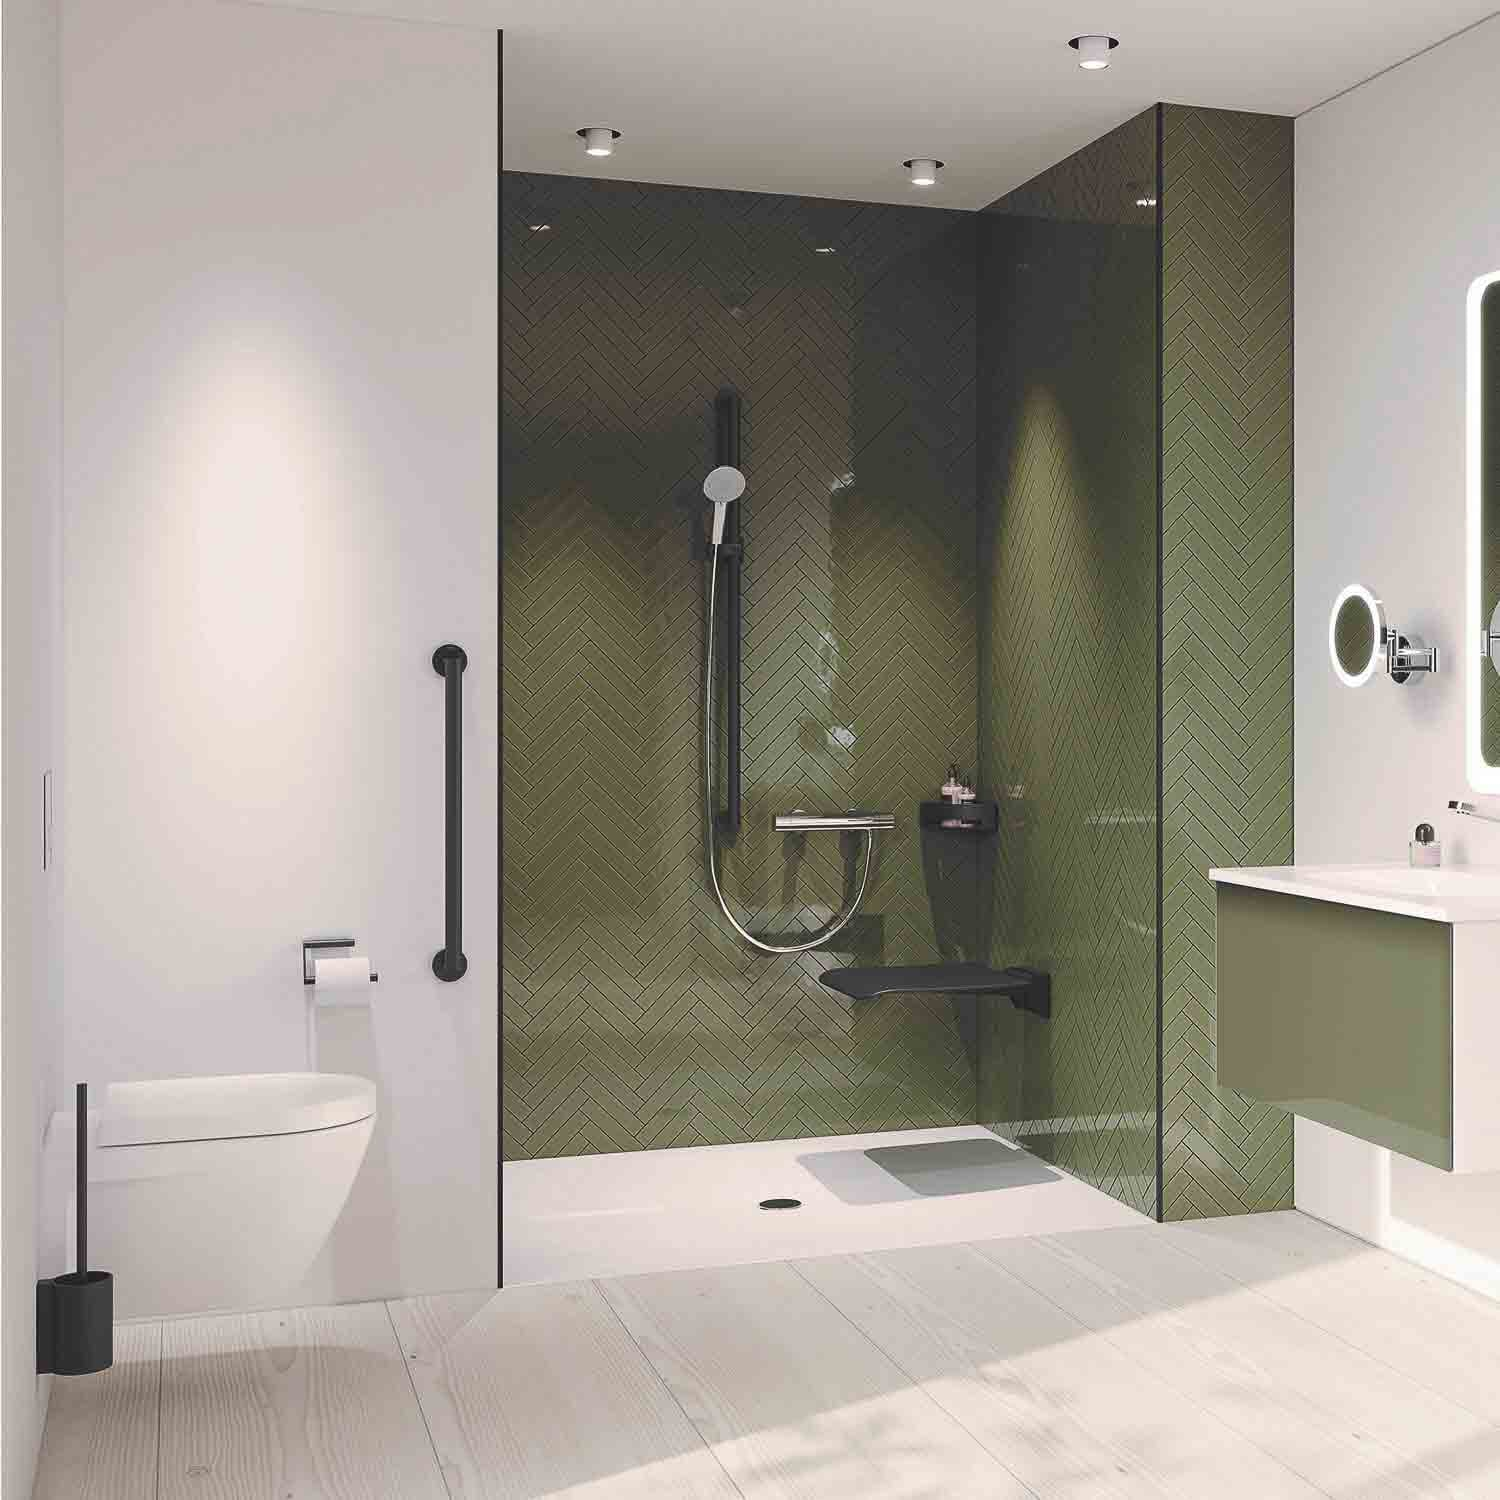 1100mm Freestyle Supportive Shower Rail with a matt black finish lifestyle image